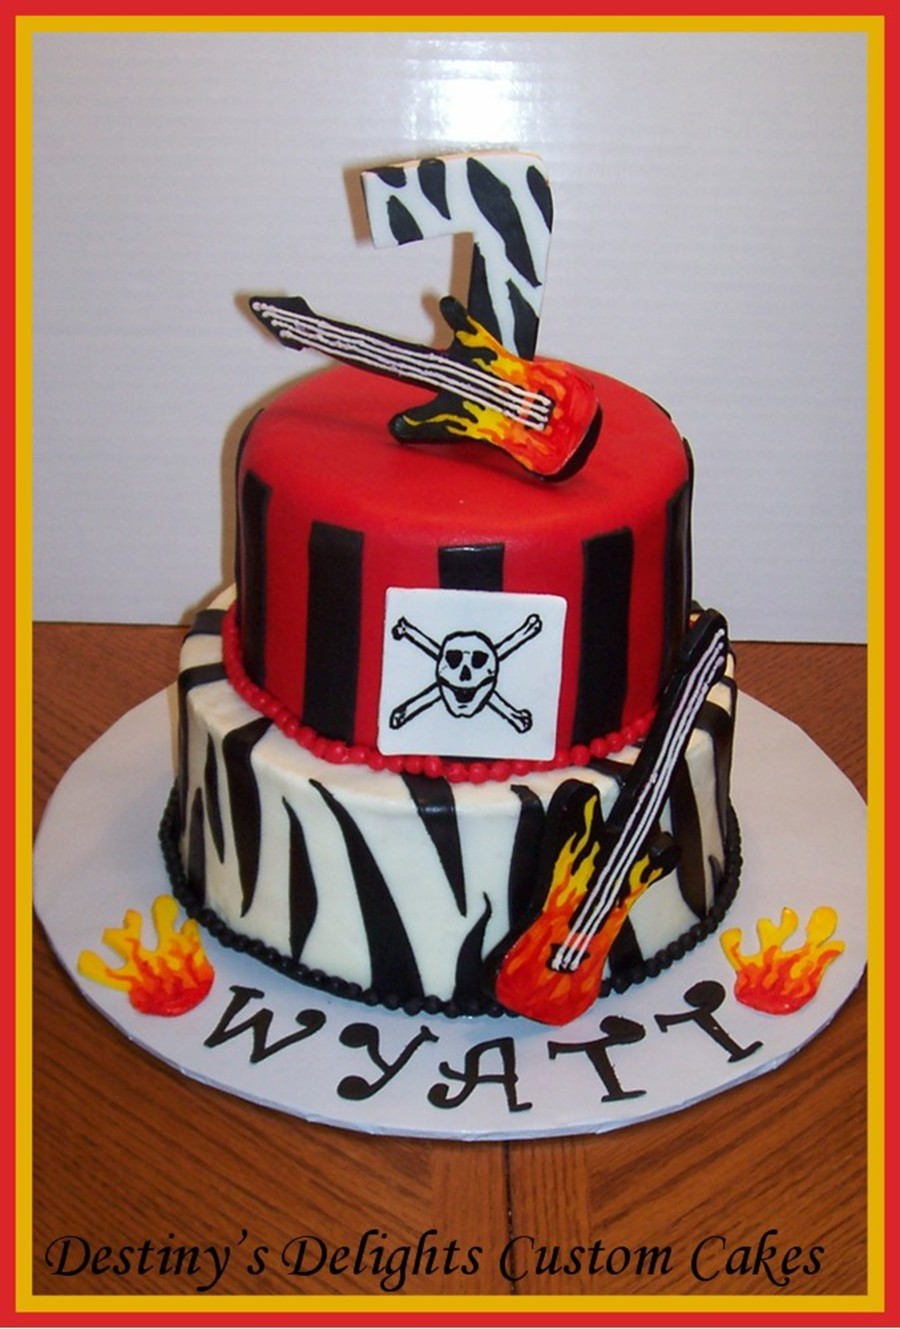 Terrific Rock N Roll Birthday Cake Cakecentral Com Birthday Cards Printable Opercafe Filternl